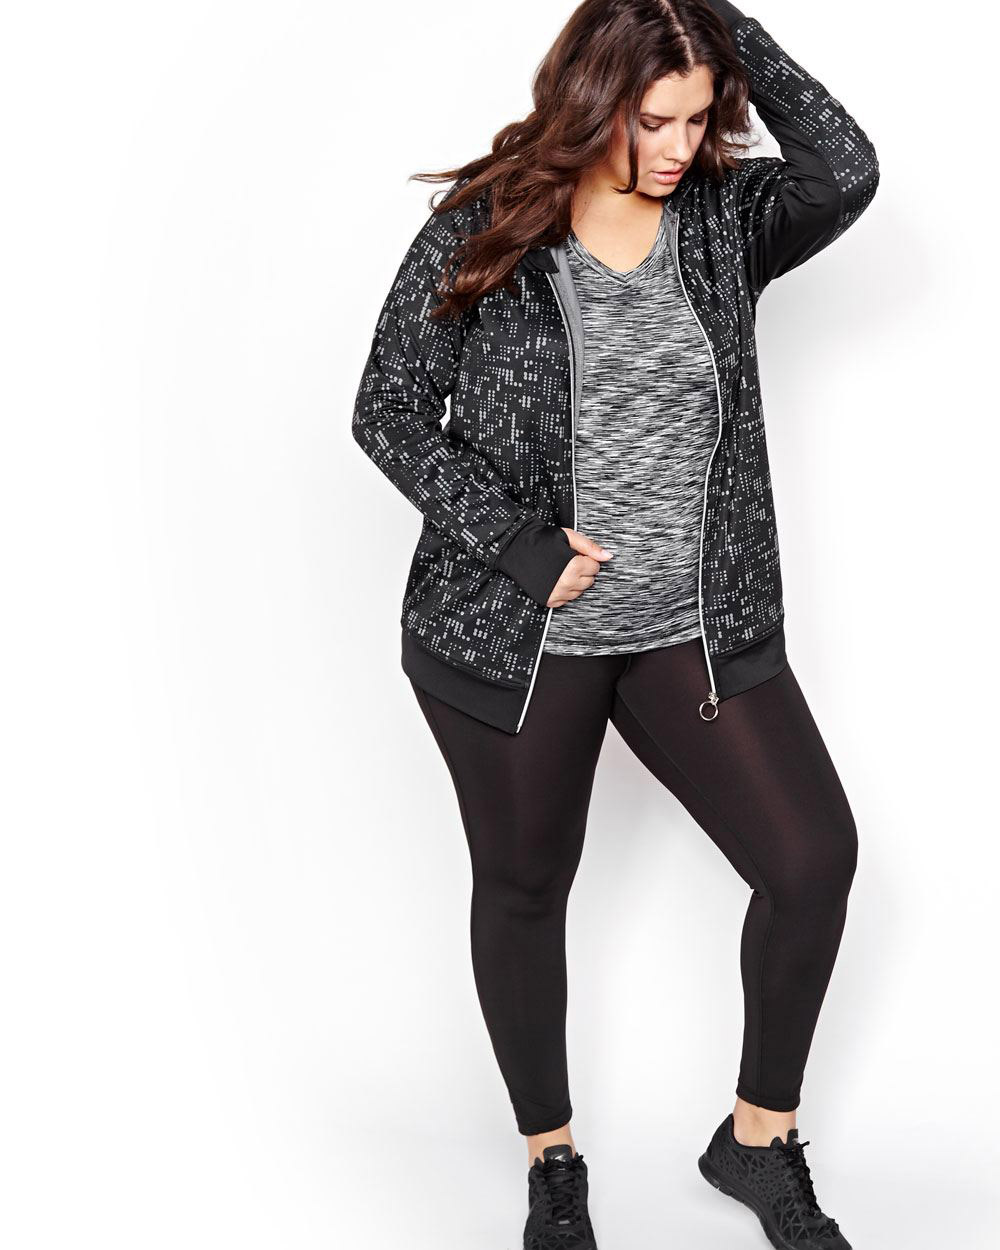 10 best plus size activewear lines for sweating it out in style addition elle sciox Images